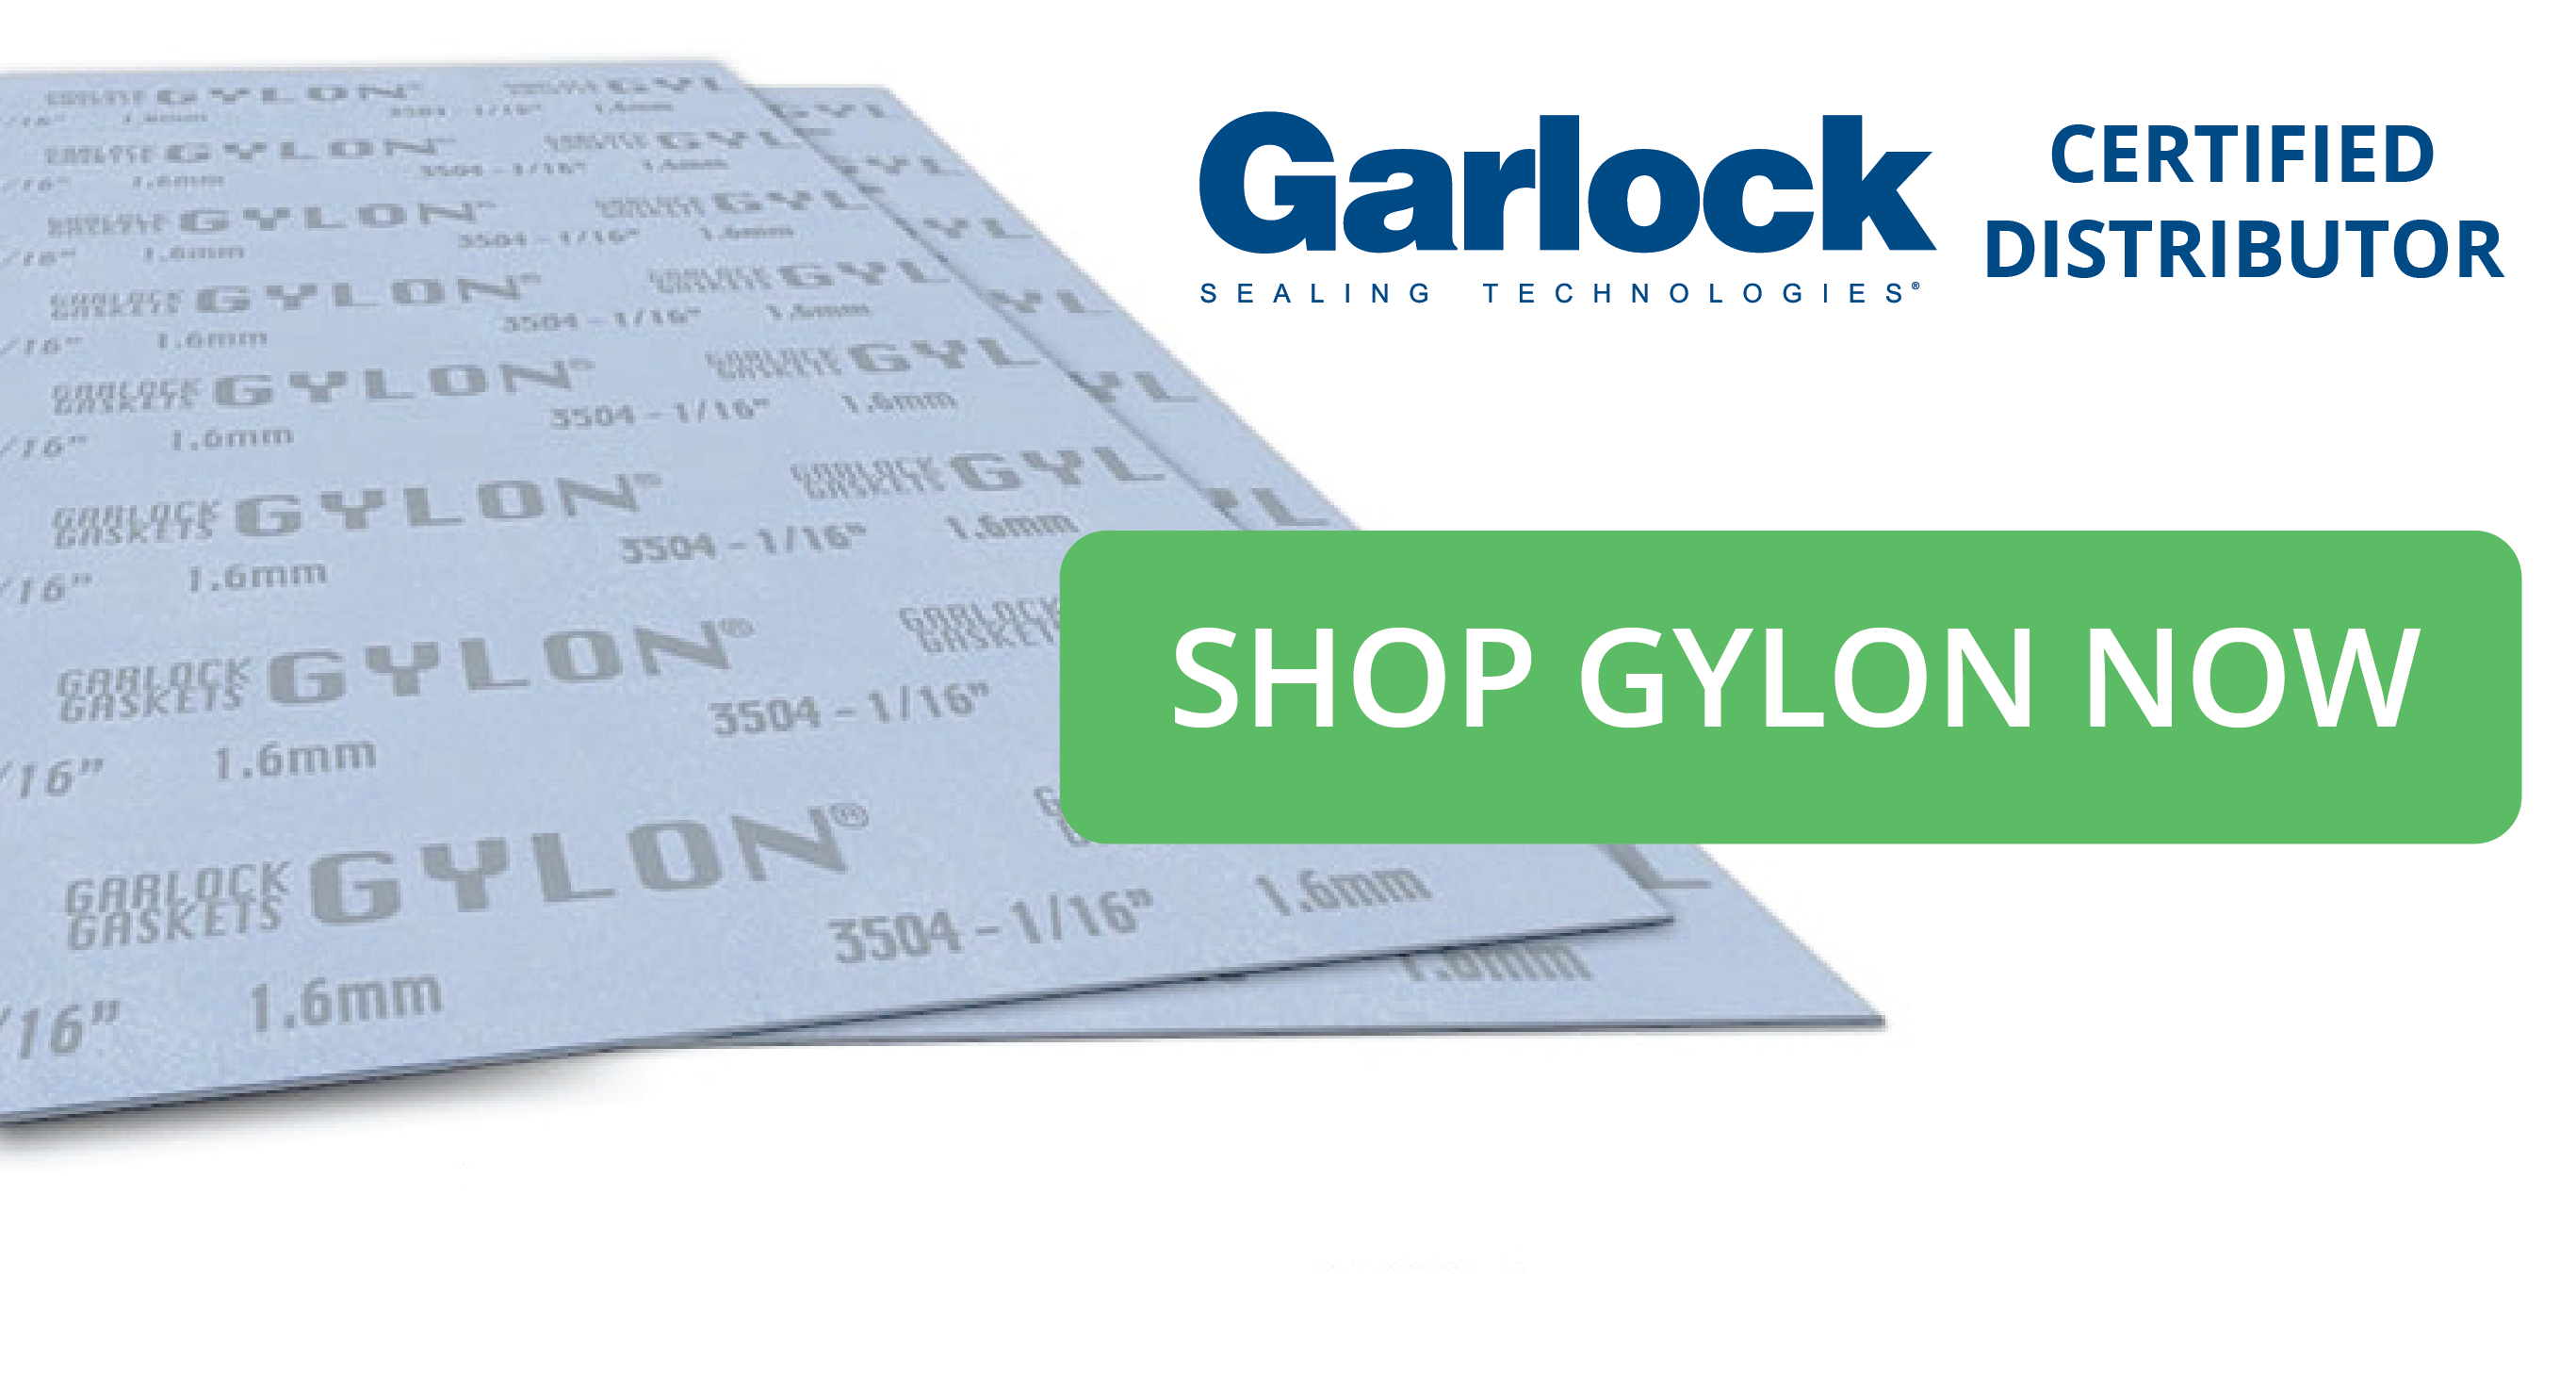 SHOP GARLOCK GYLON NOW